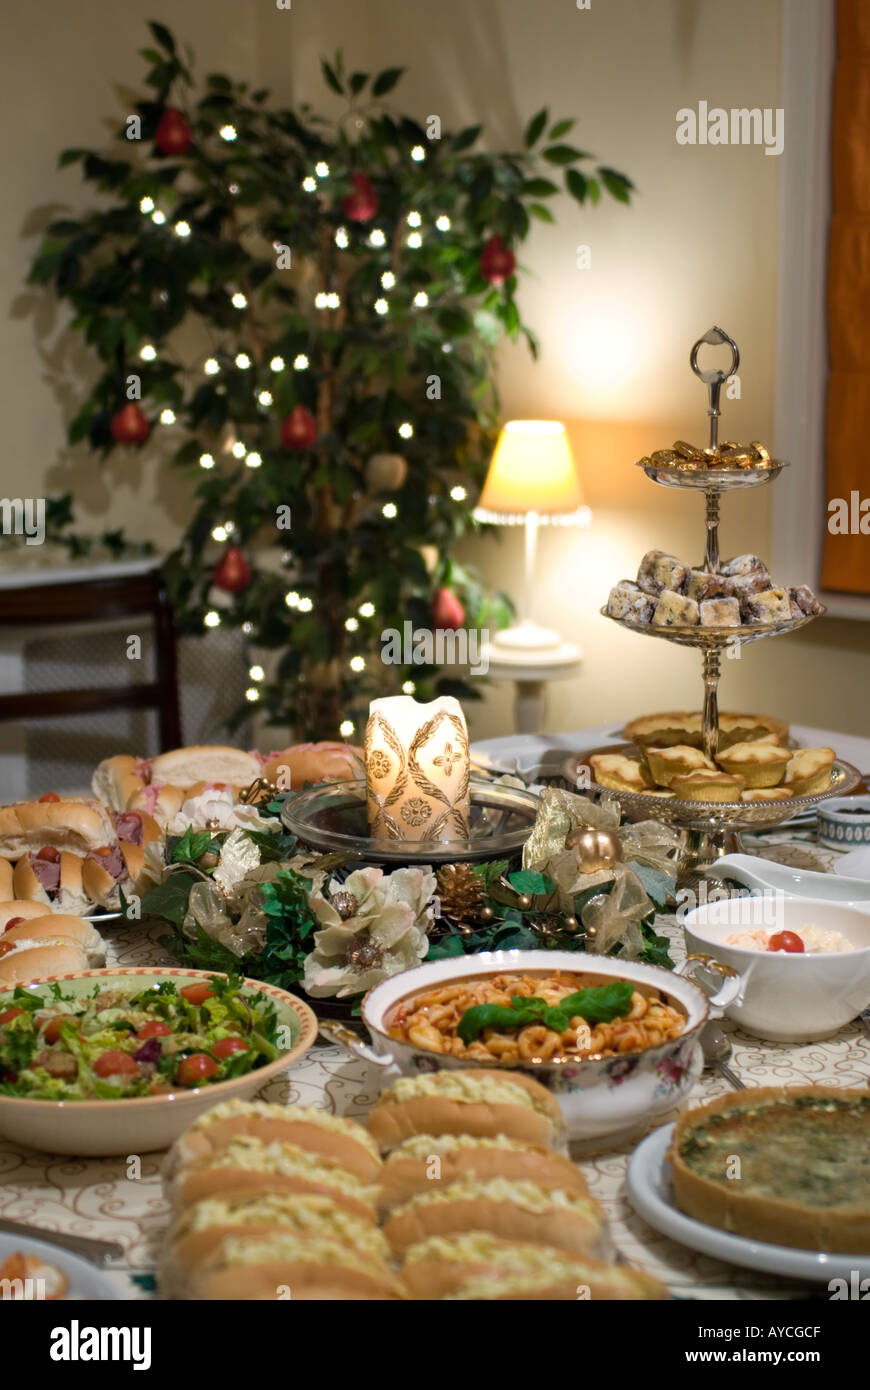 Christmas Party Table Part - 39: Christmas Party Table Set With Candle And Luxury Food